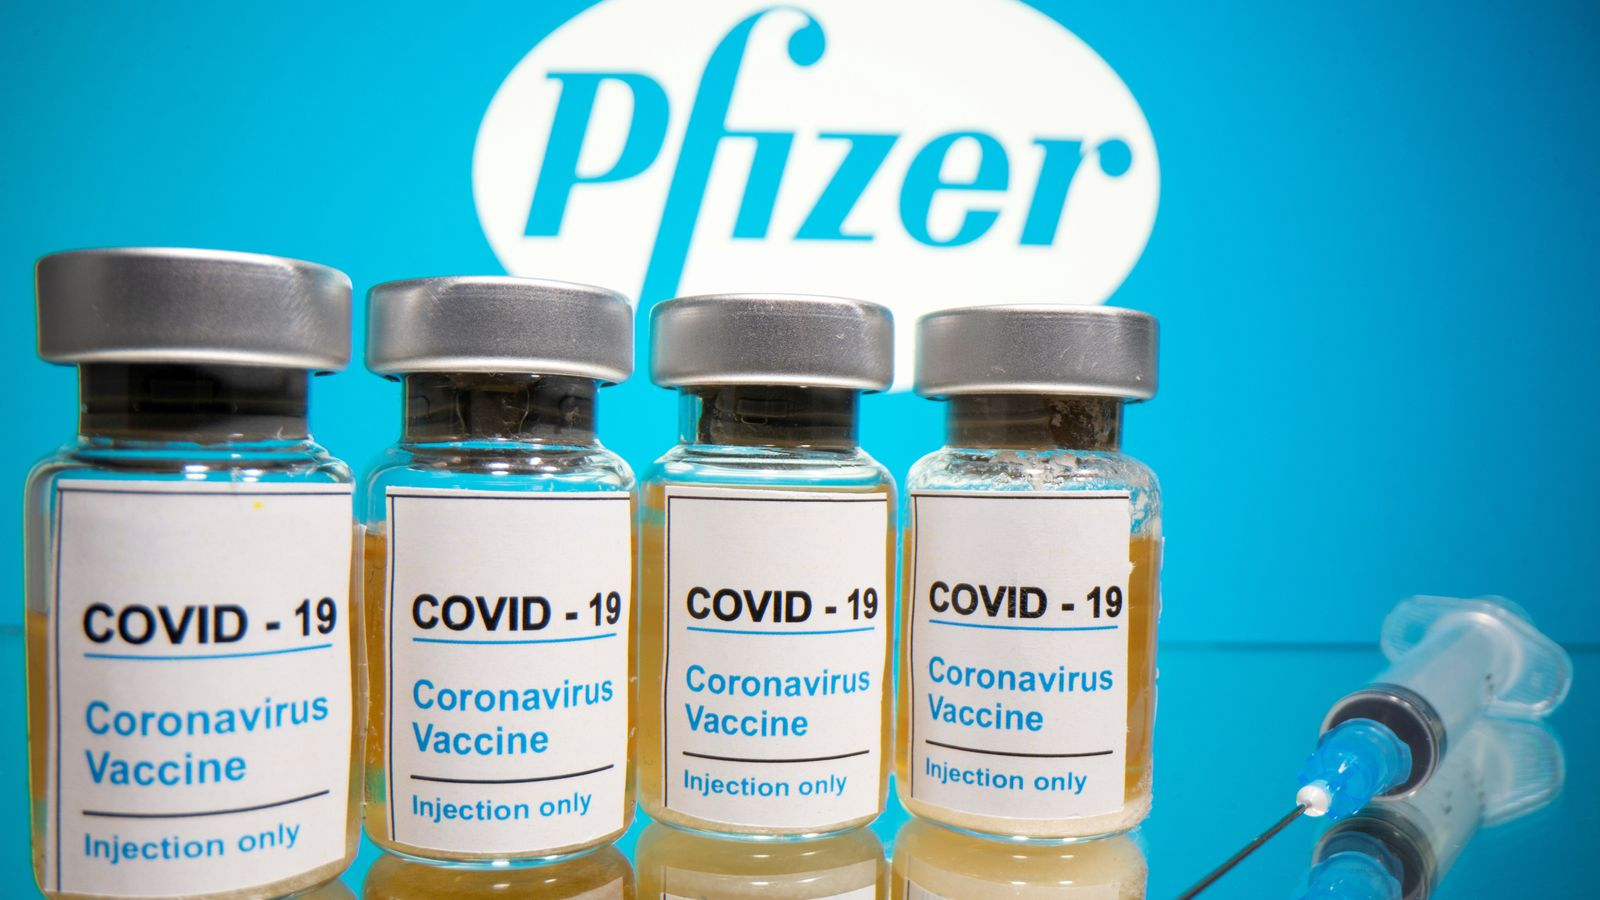 Coronavirus: Pfizer COVID-19 vaccine found to be 90% effective in 'great day for science and humanity'